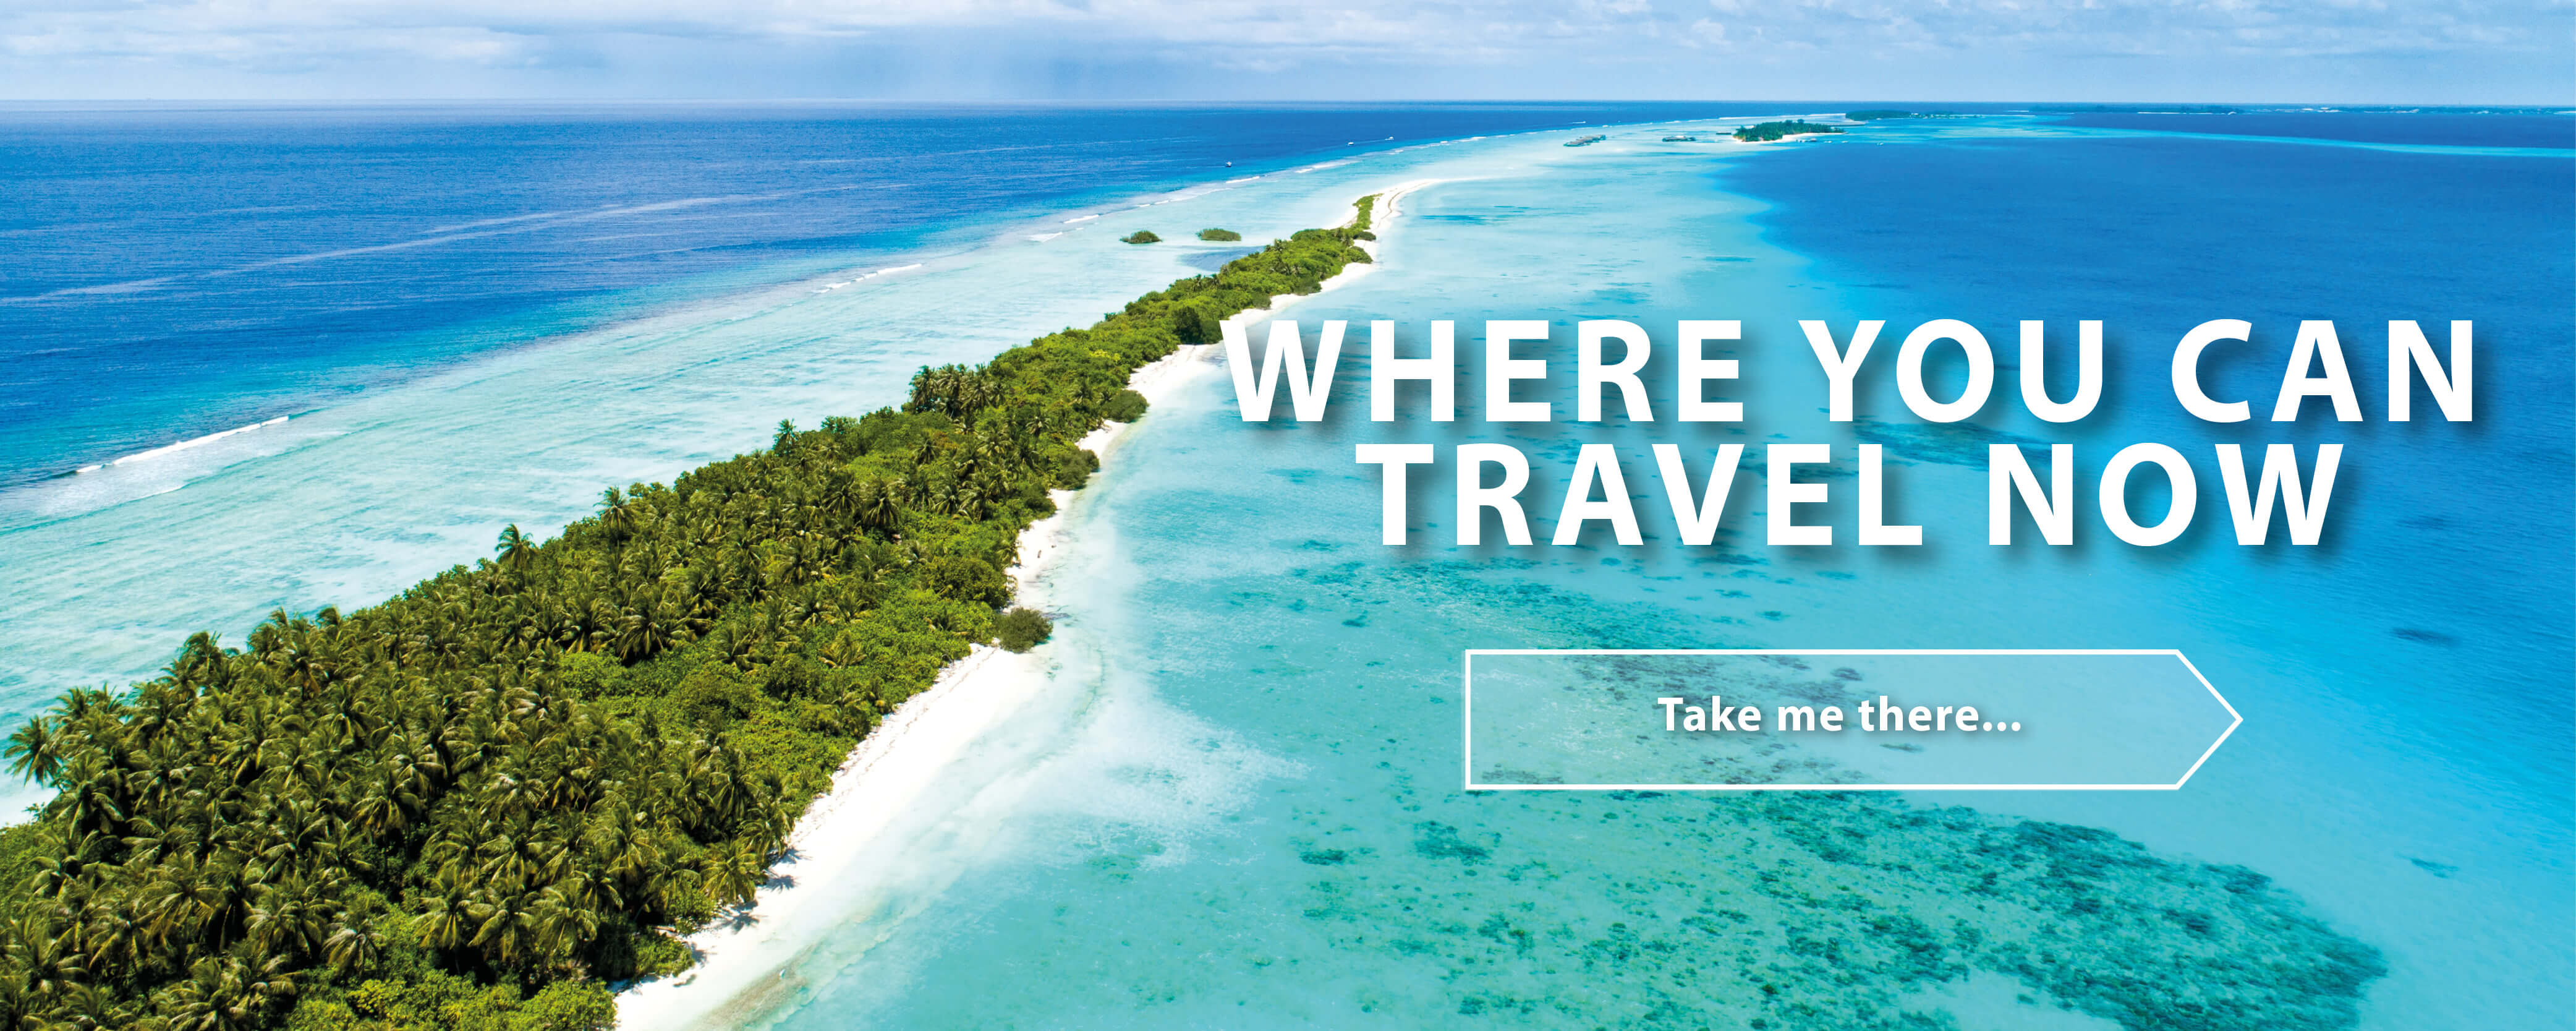 Travel with Confidence_Where you can travel now